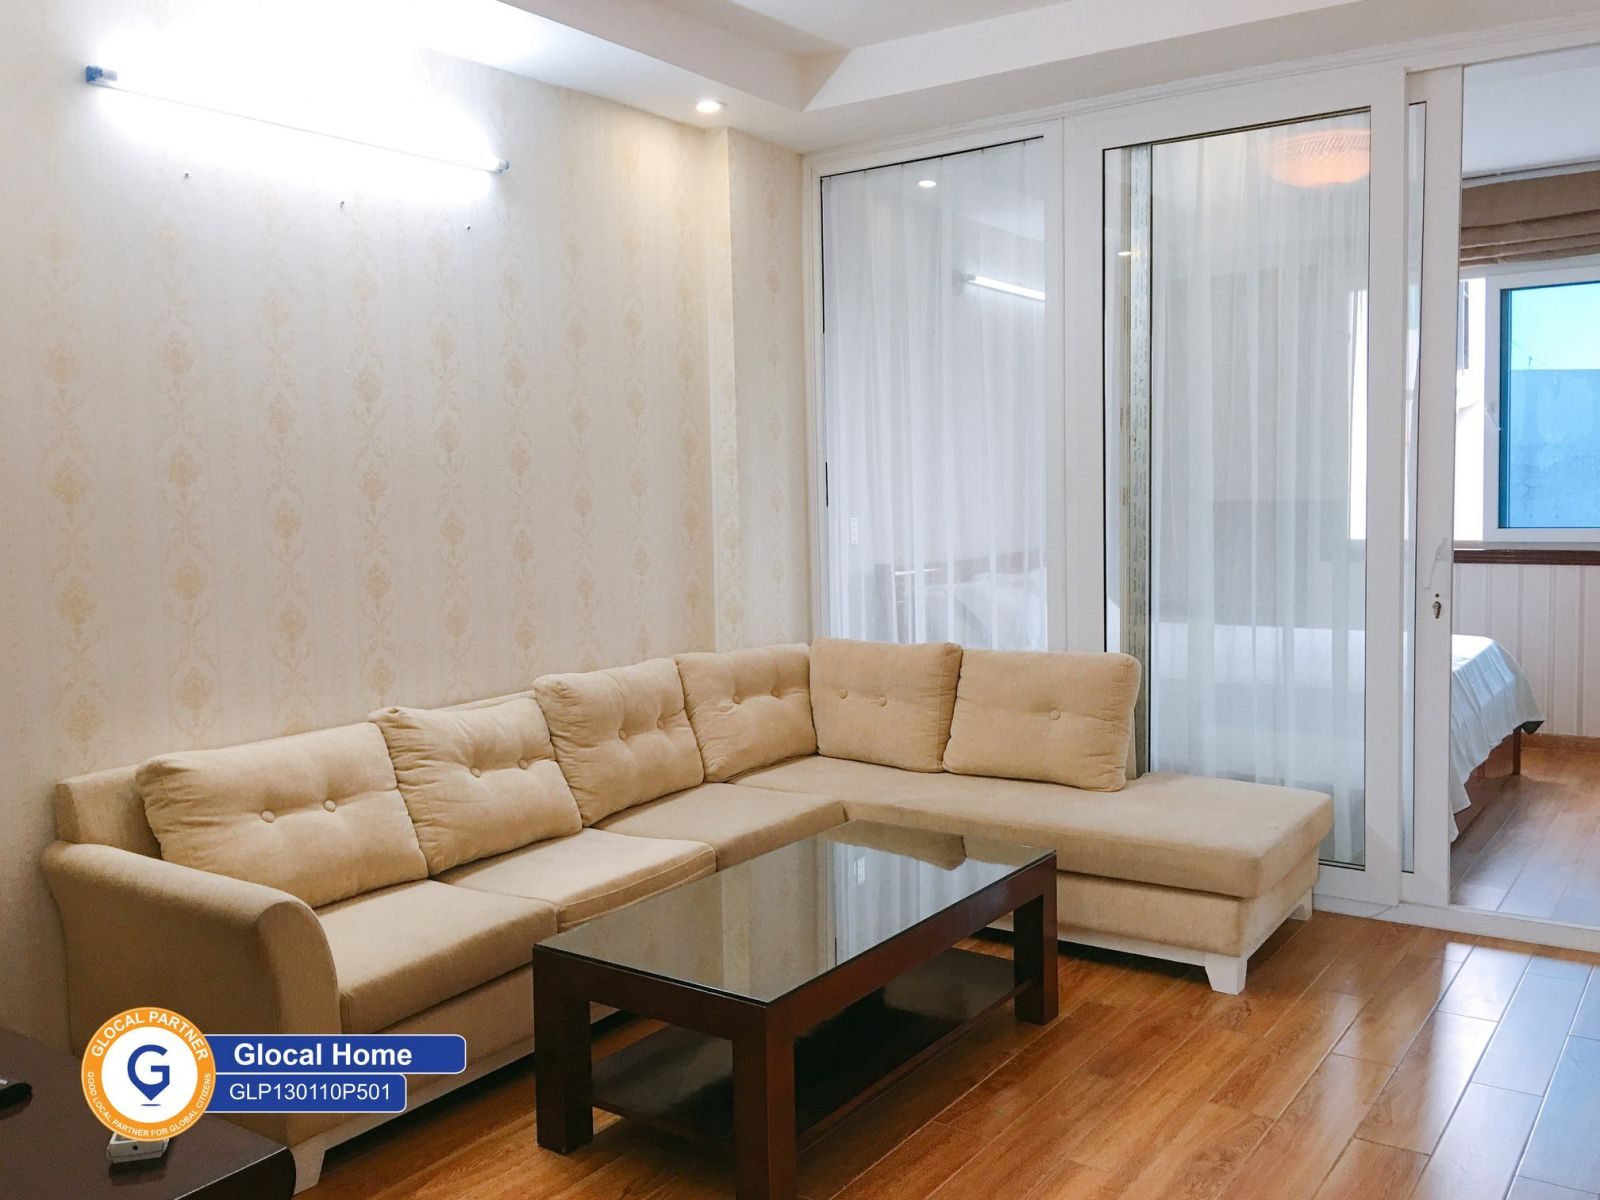 2 bedroom apartment, many windows with natural light in Yen Phu